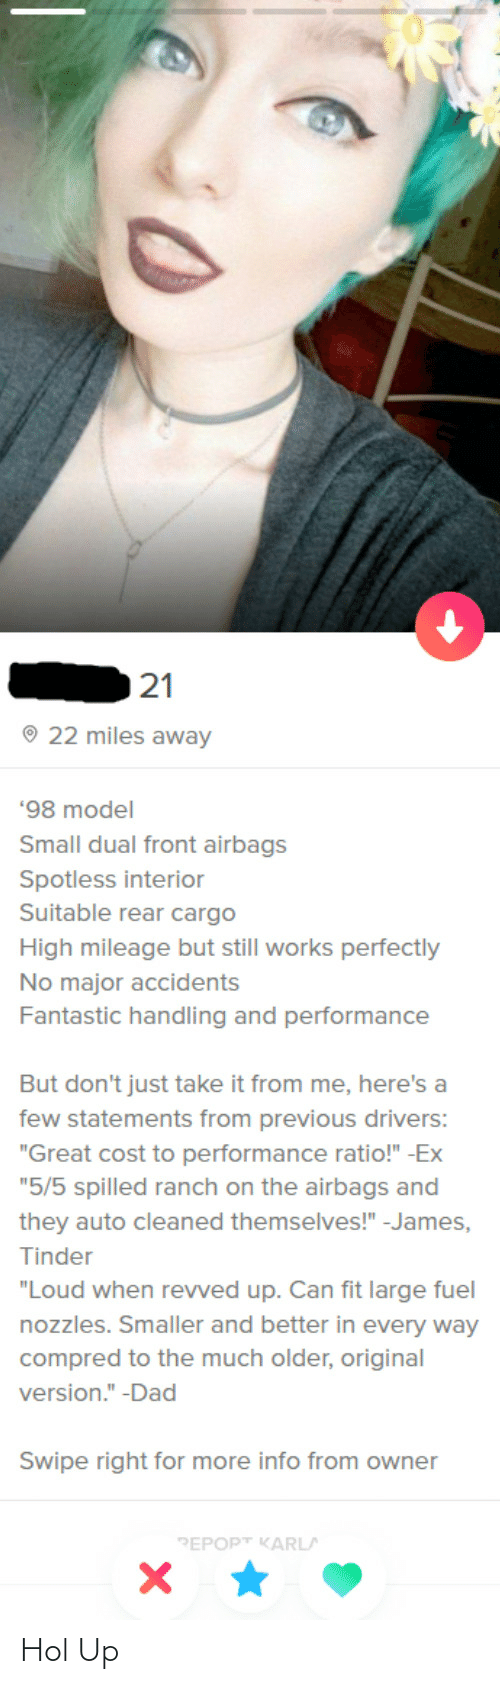 """Dad, Tinder, and Hol Up: 21  O 22 miles away  '98 model  Small dual front airbags  Spotless interior  Suitable rear cargo  High mileage but still works perfectly  No major accidents  Fantastic handling and performance  But don't just take it from me, here's a  few statements from previous drivers:  """"Great cost to performance ratio!"""" -Ex  """"5/5 spilled ranch on the airbags and  they auto cleaned themselves!"""" -James,  Tinder  """"Loud when revved up. Can fit large fuel  nozzles. Smaller and better in every way  compred to the much older, original  version."""" -Dad  Swipe right for more info from owner  PEPOPT KARLA Hol Up"""